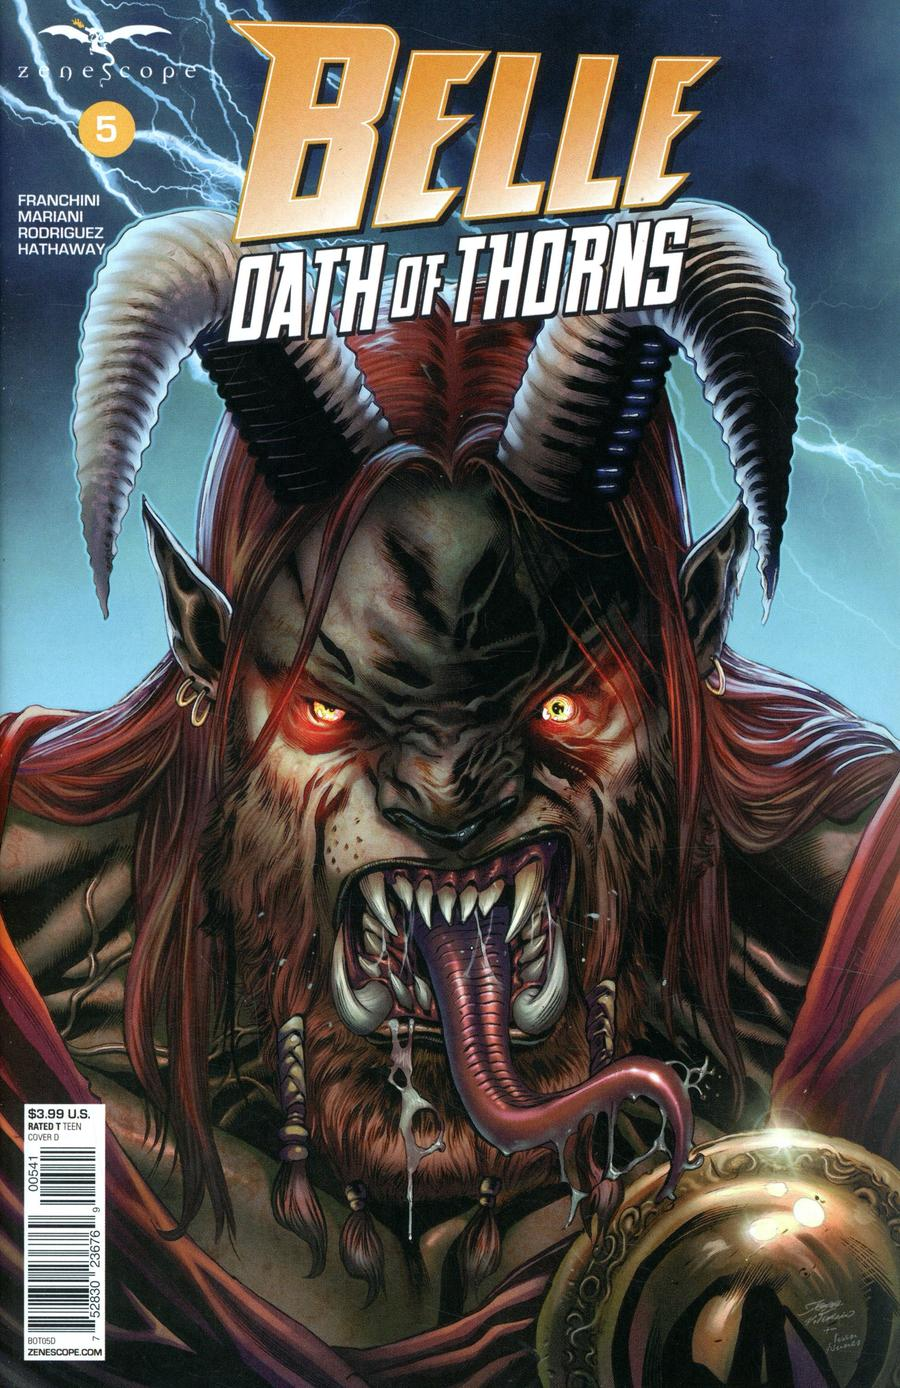 Grimm Fairy Tales Presents Belle Oath Of Thorns #5 Cover D Igor Vitorino